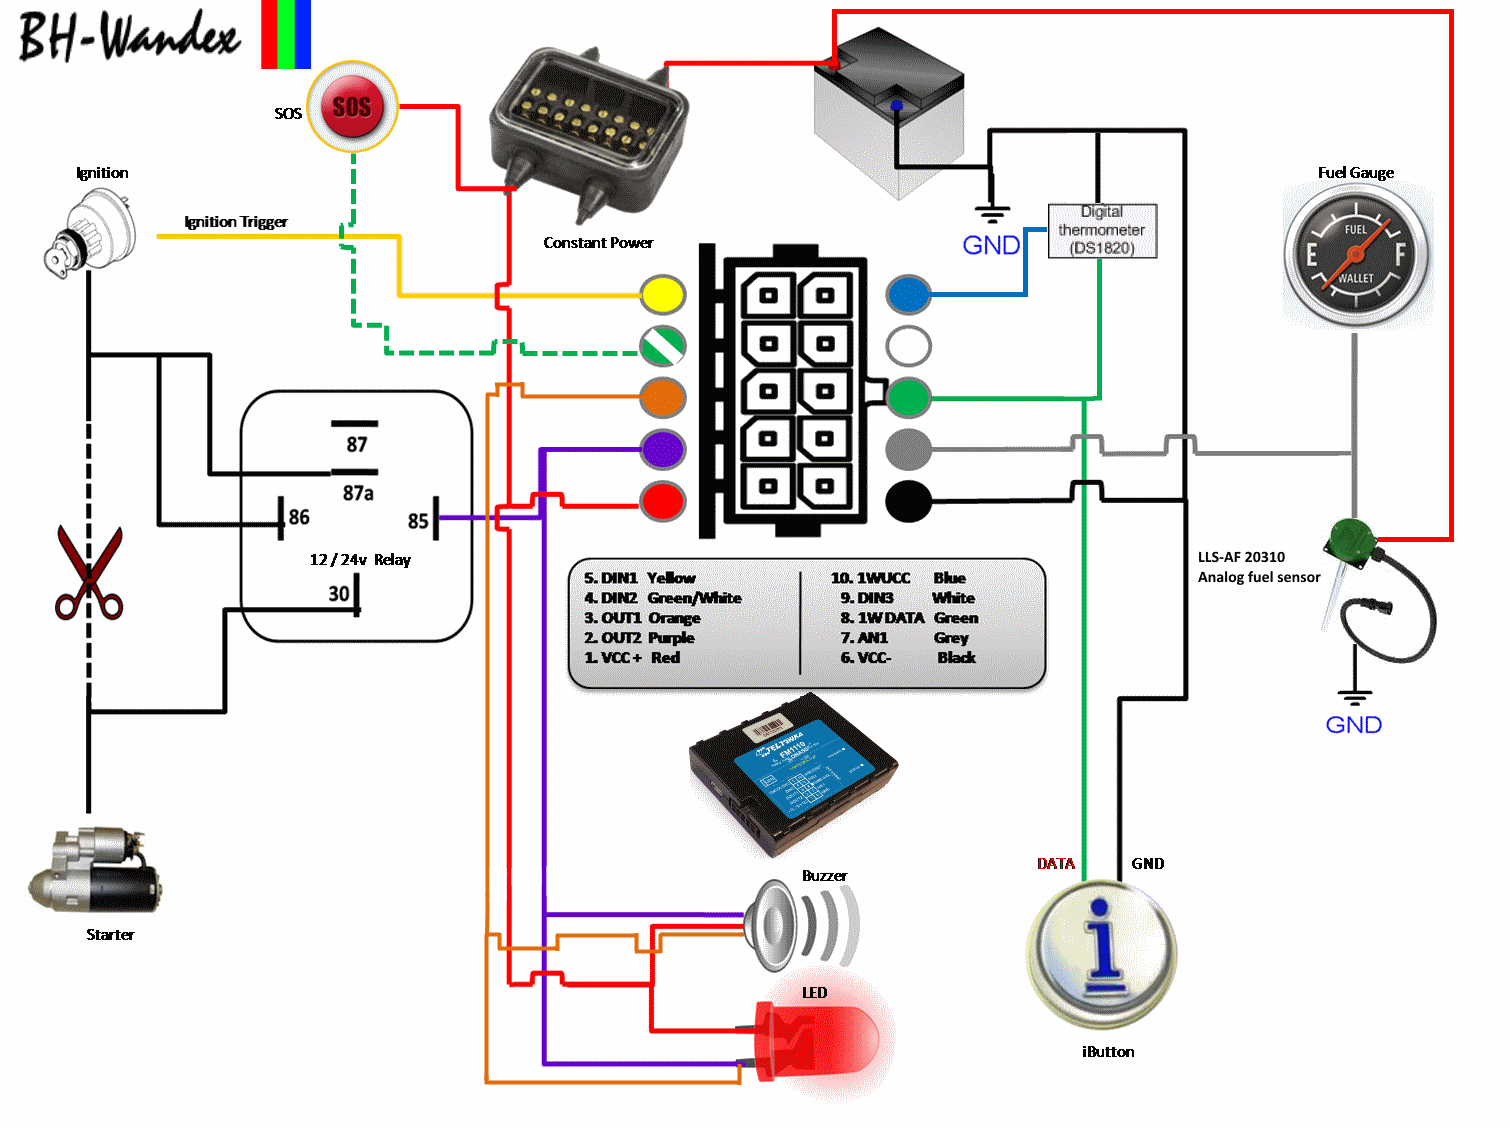 ca%C5%82o%C5%9B%C4%87 lokalizator samochodowy Basic Electrical Wiring Diagrams at bakdesigns.co